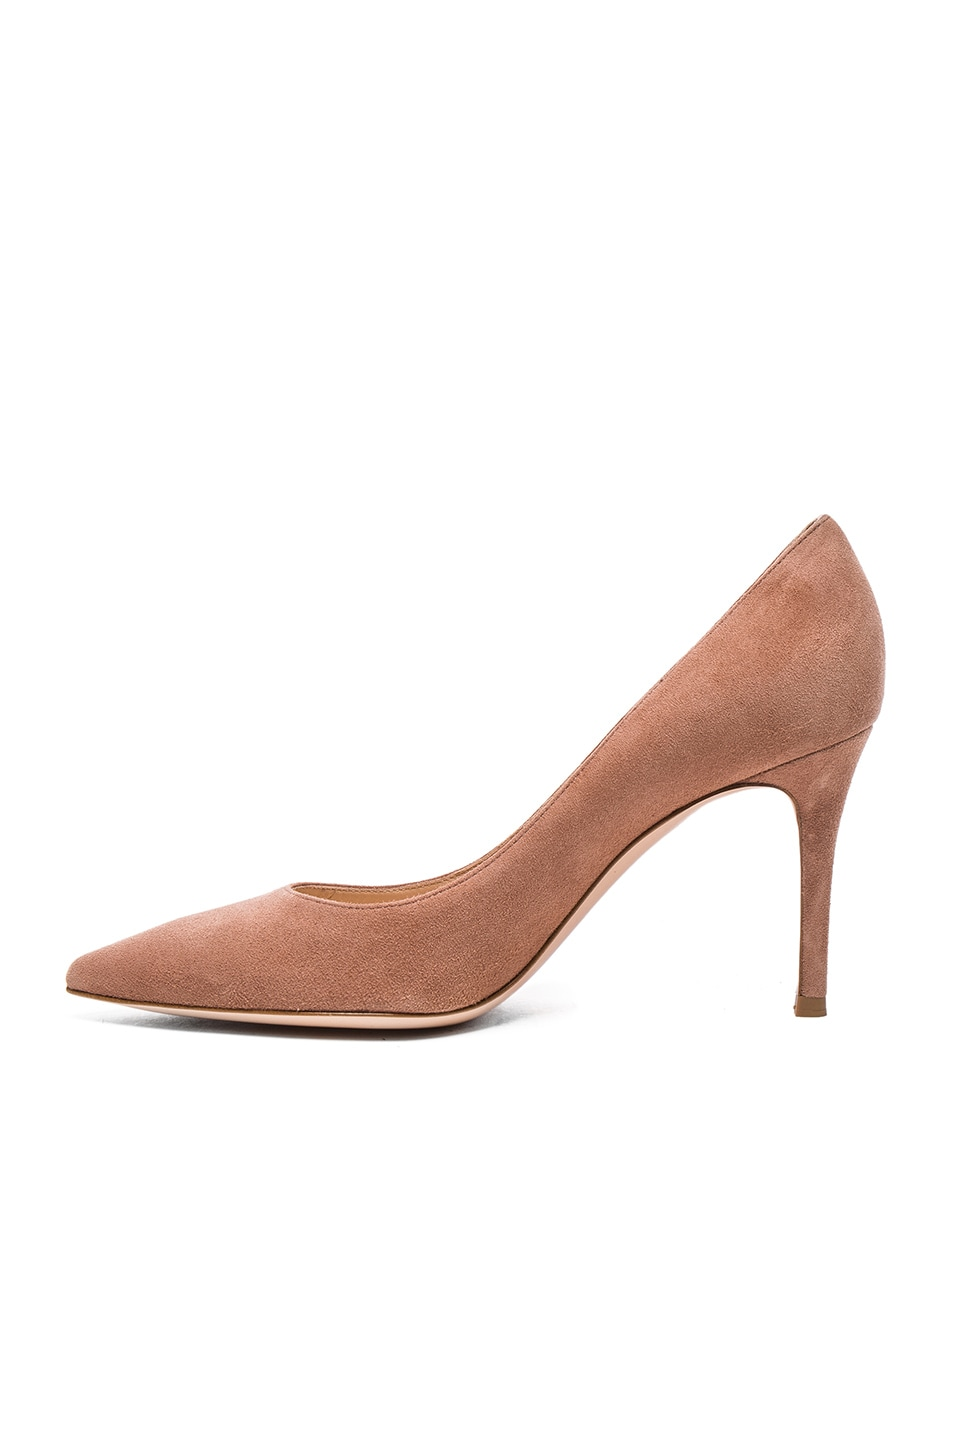 Image 5 of Gianvito Rossi Suede Gianvito Heels in Praline